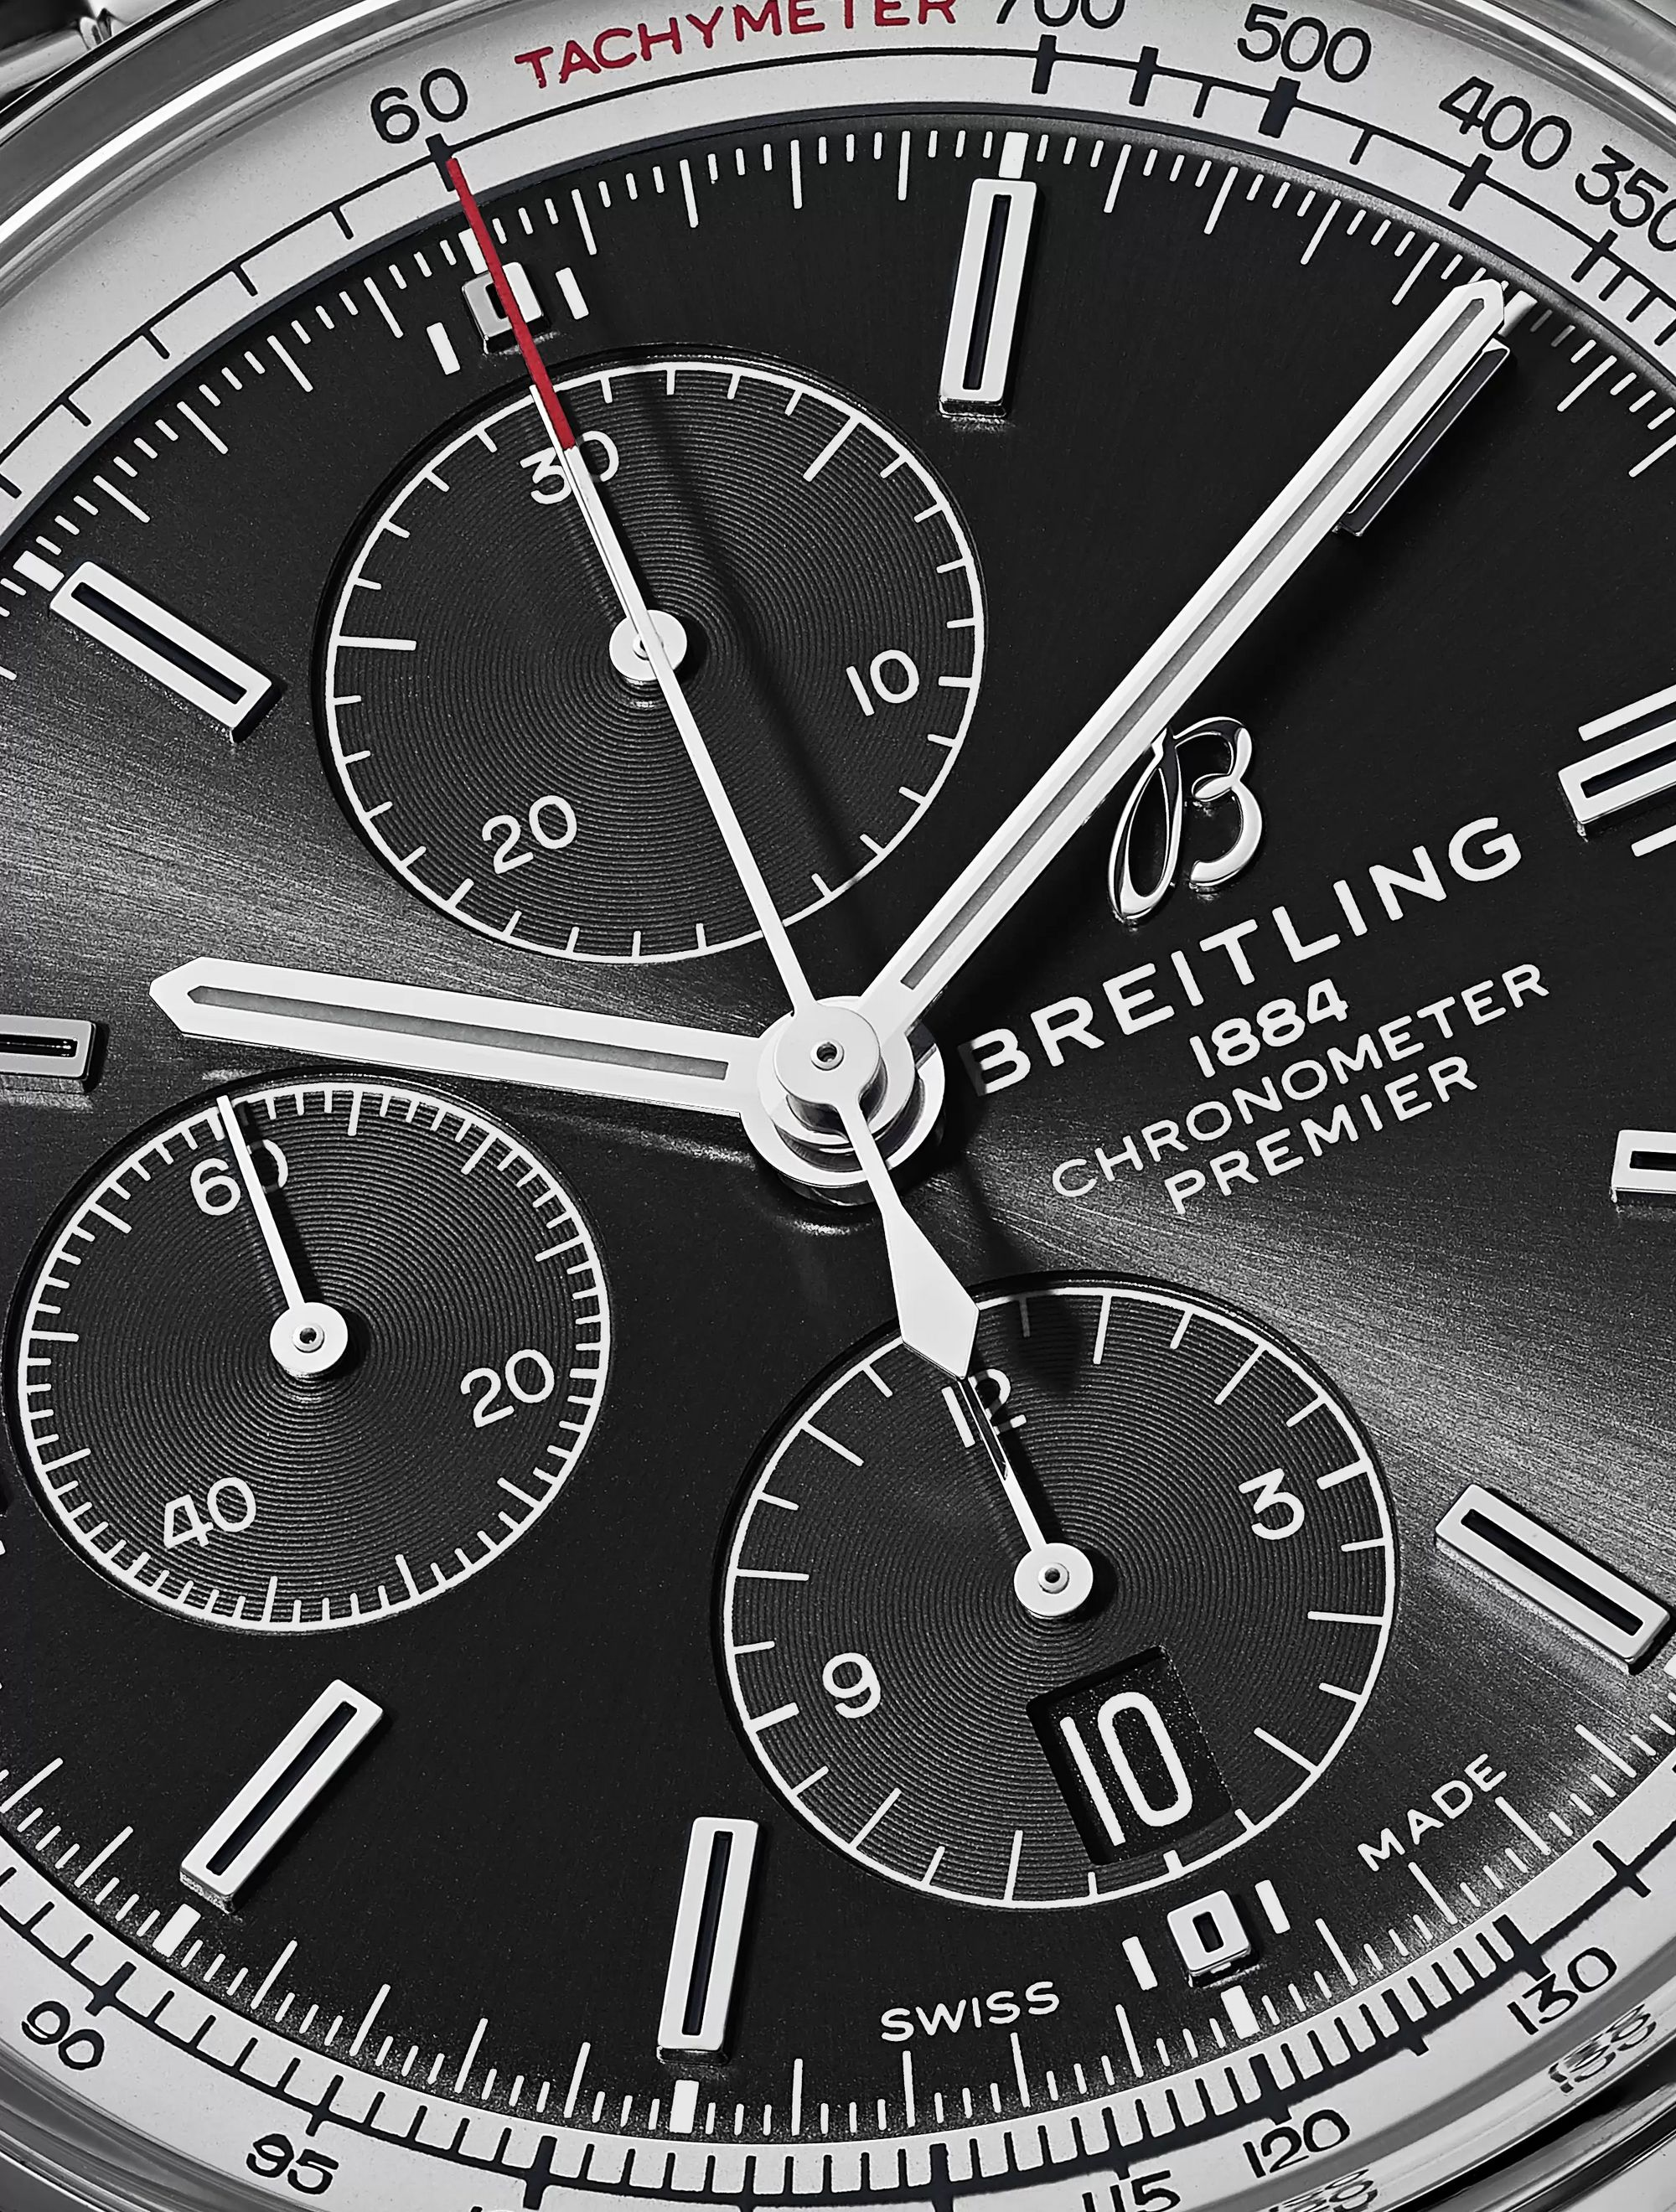 Breitling Premier Chronograph 42mm Stainless Steel Watch, Ref. No. A13315351B1A1